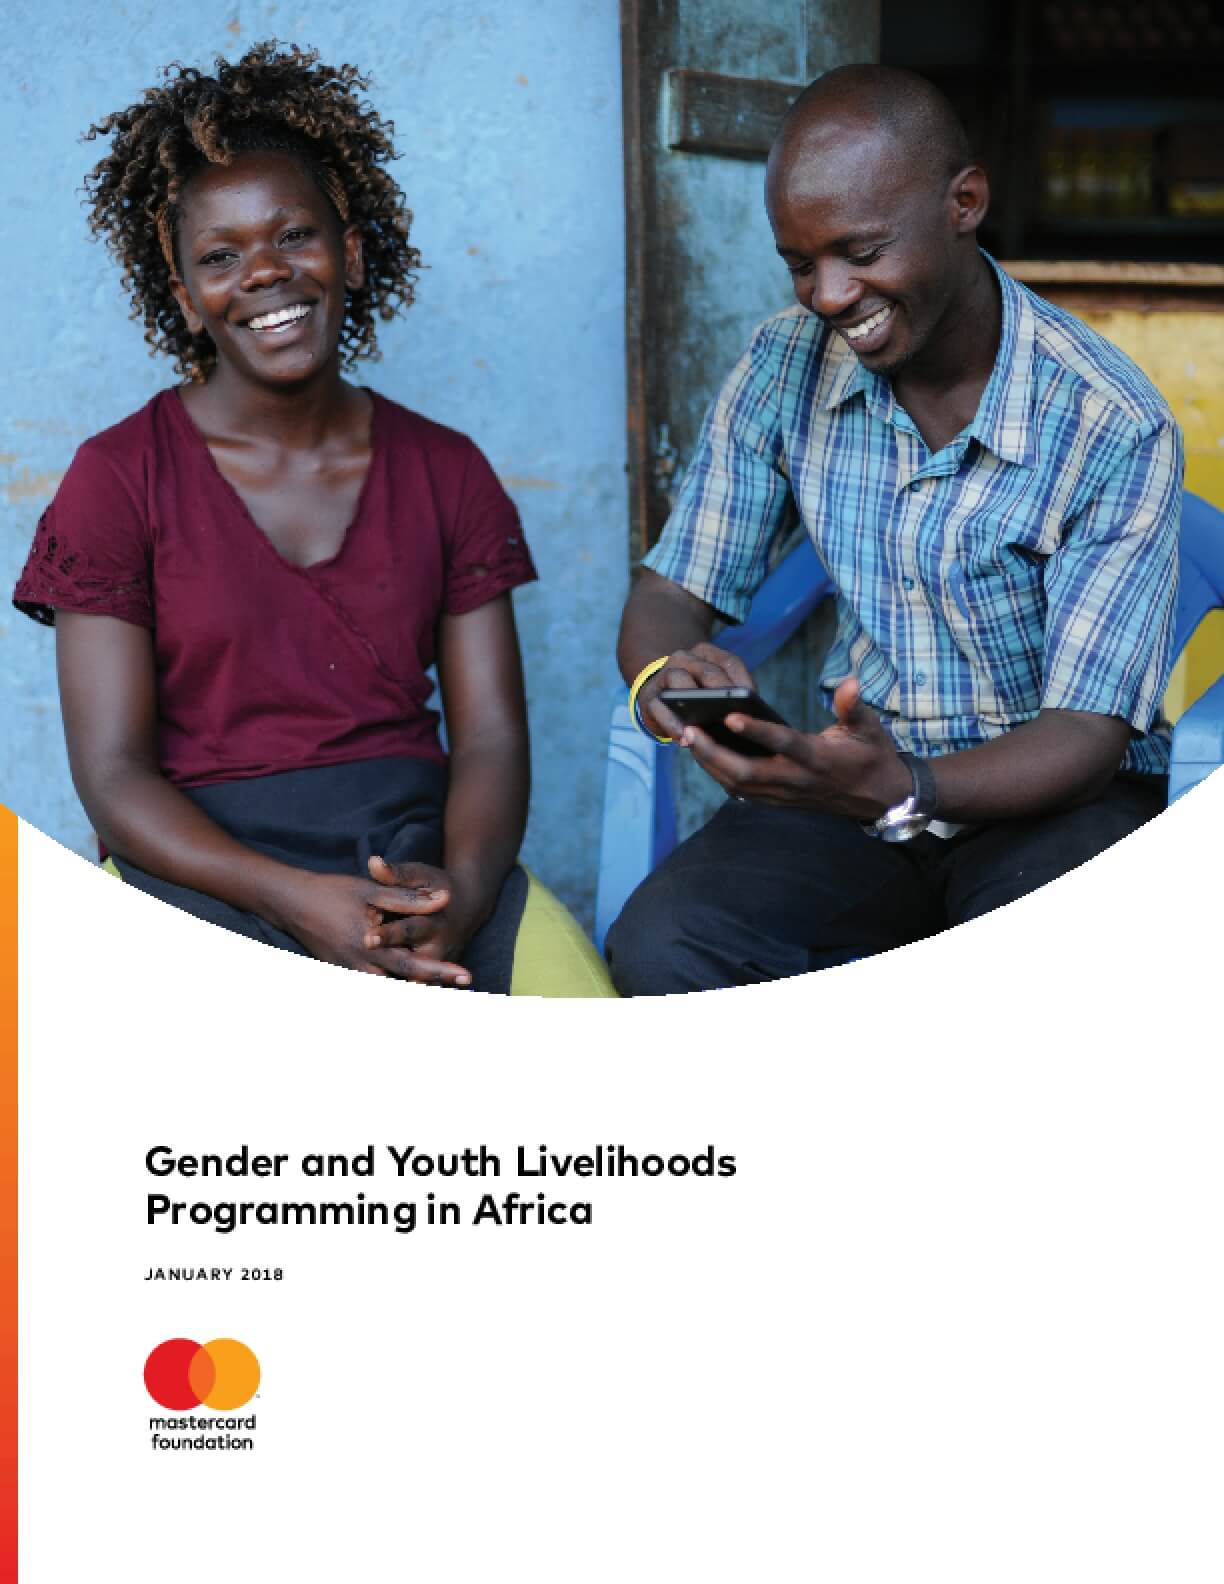 Gender and Youth Livelihood Programming in Africa